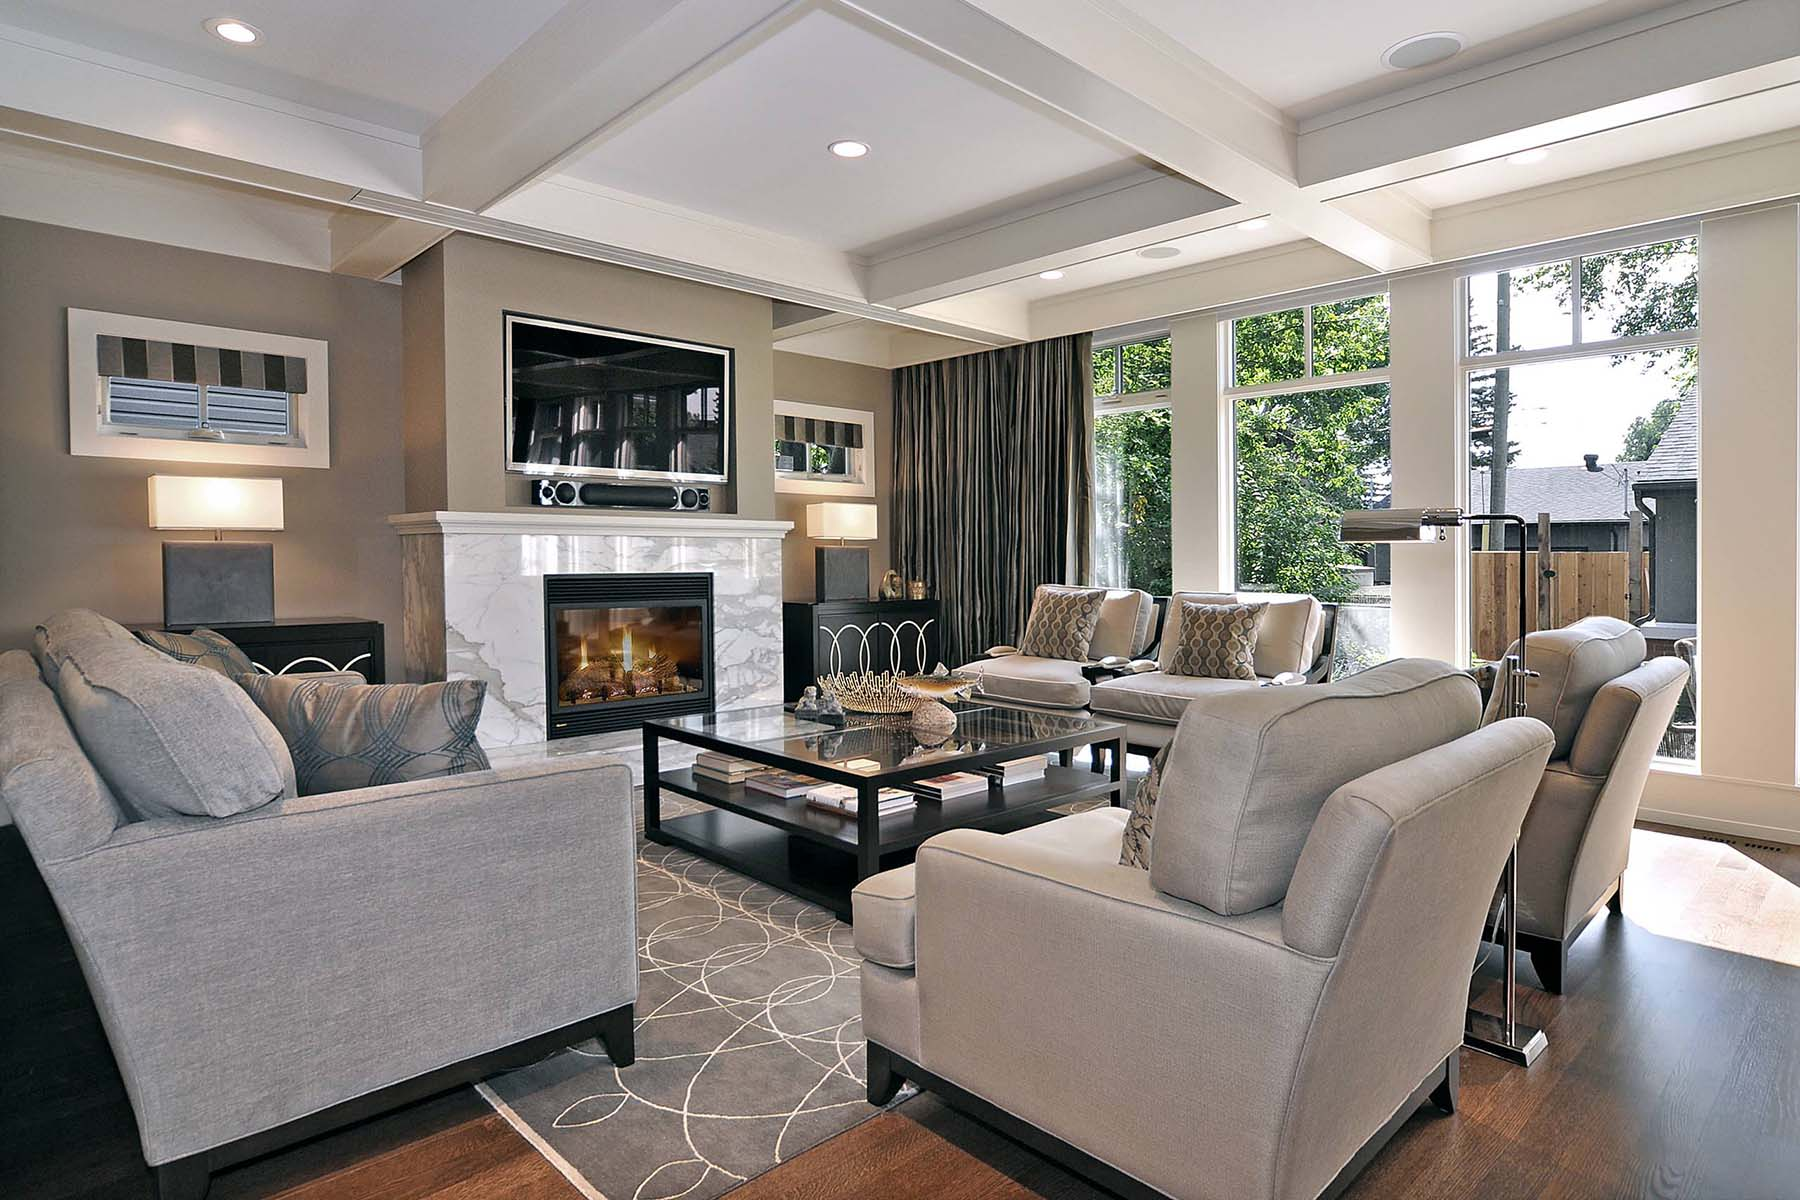 Beautiful living room with tan walls and white trim with marble fireplace surround and white coffered ceiling.